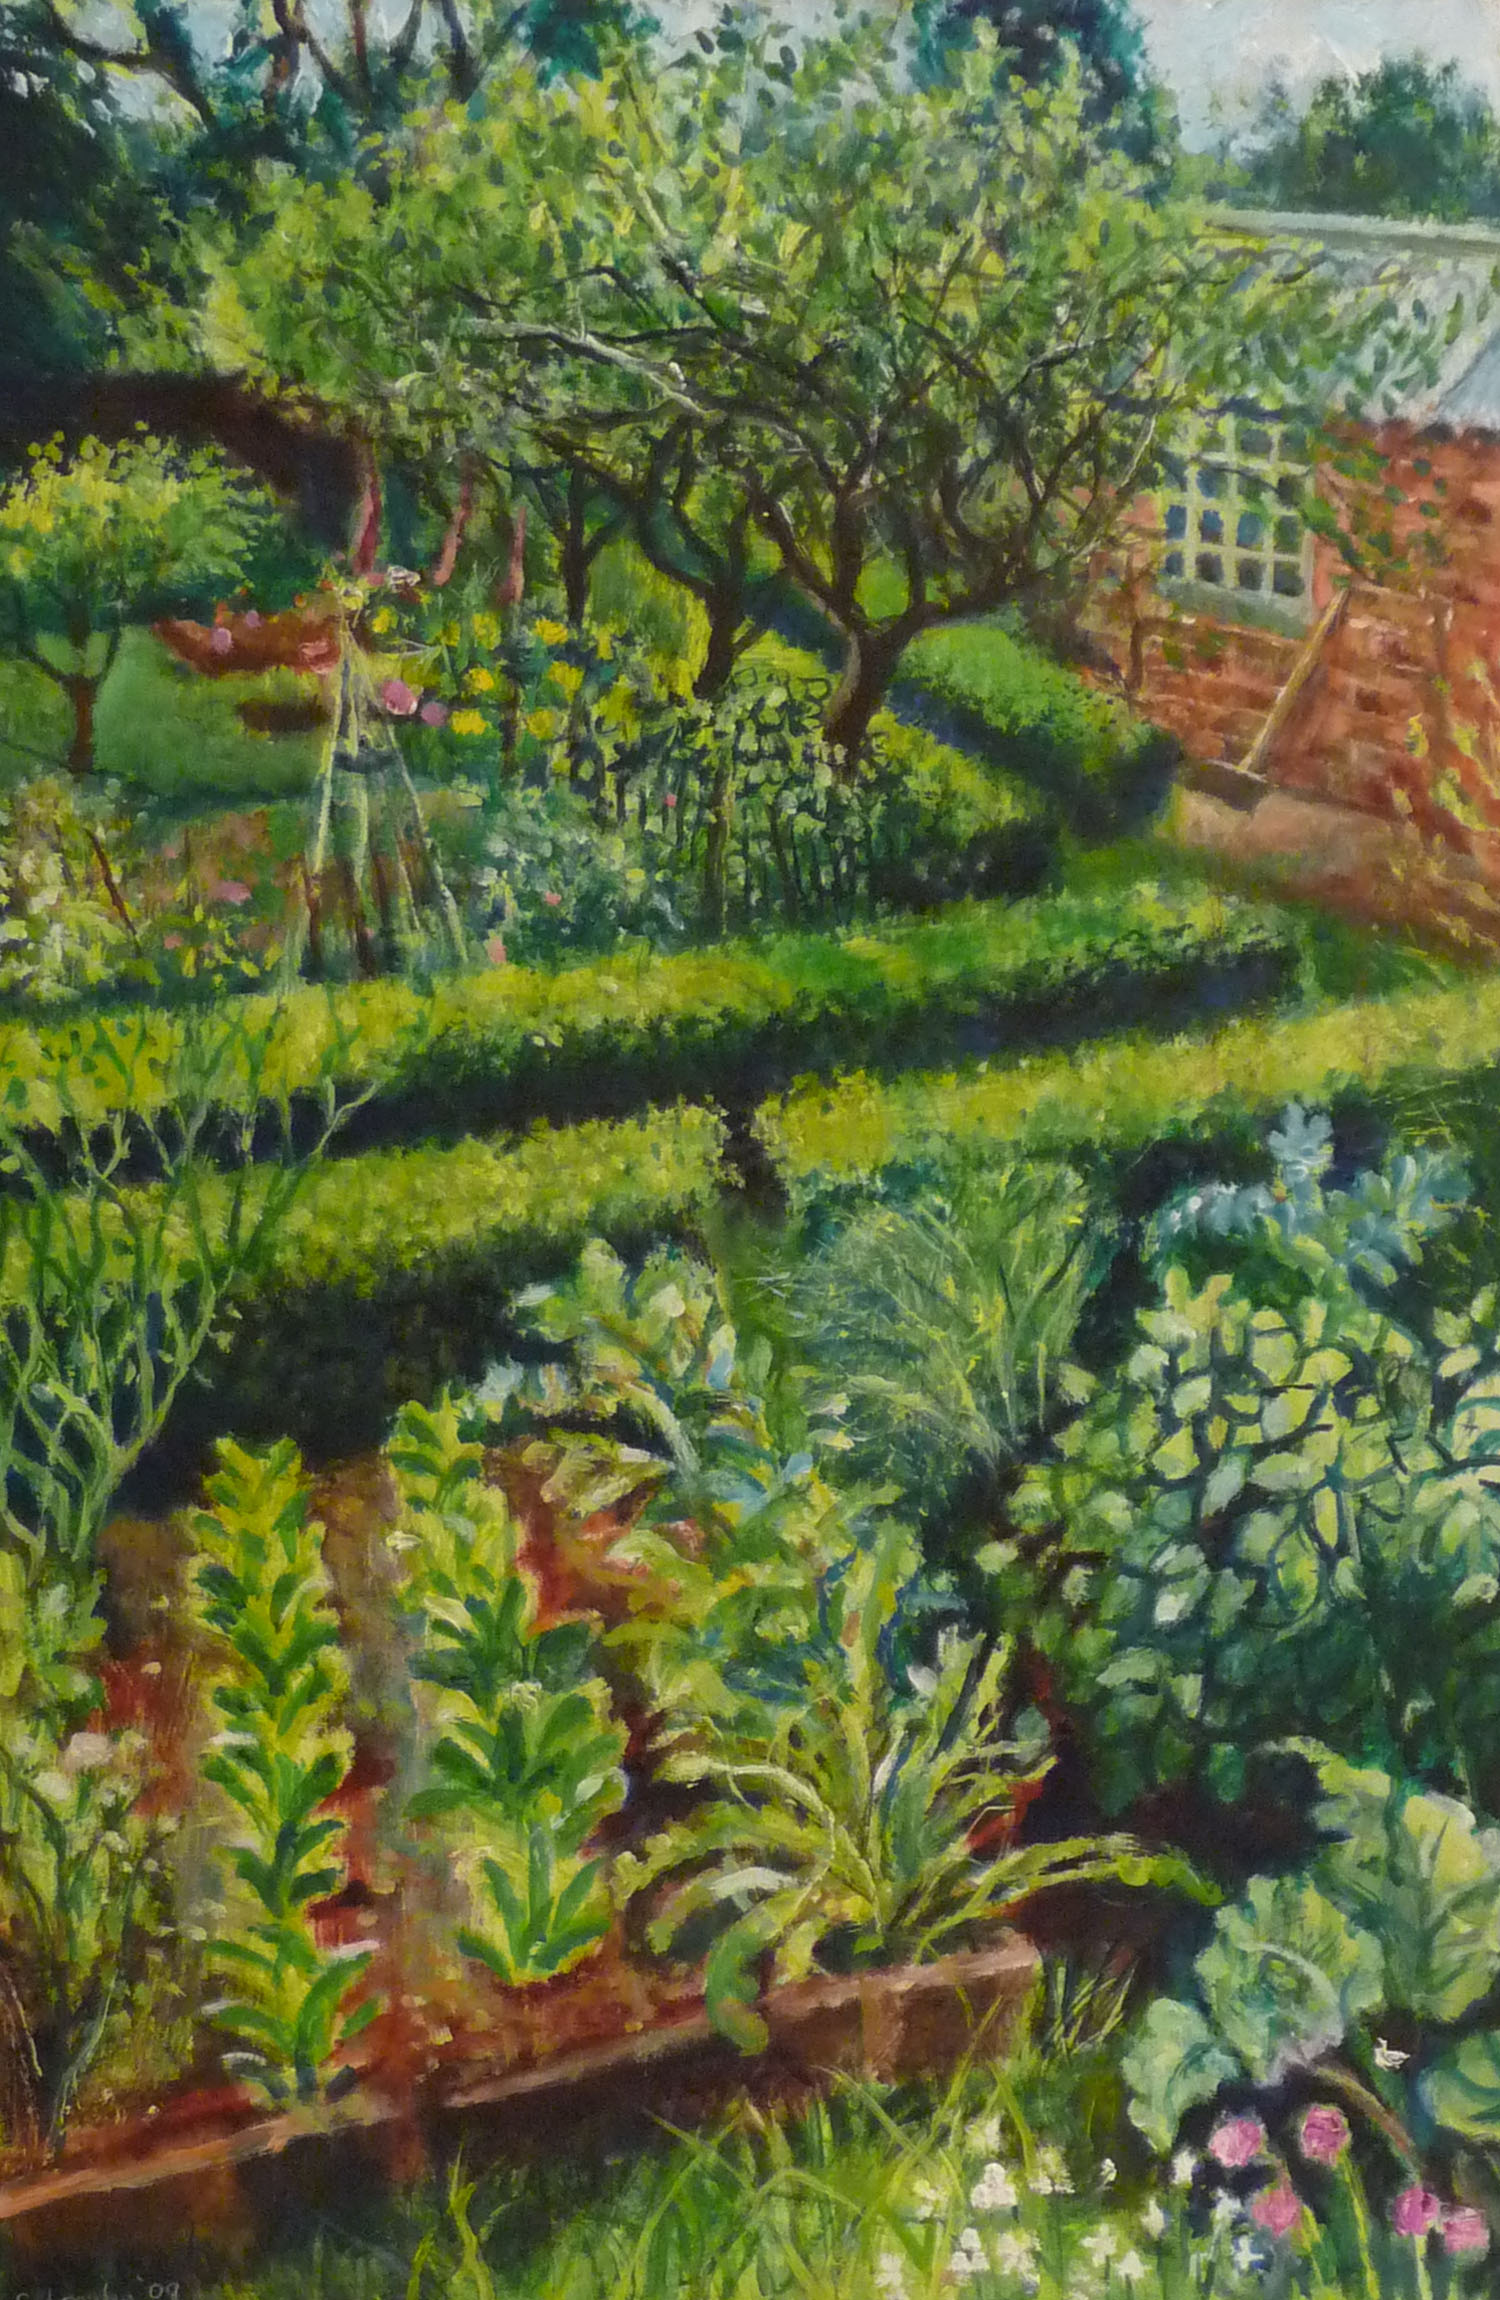 Sarah longley_-_Garden Shed_oil on board_61 x 41cm.jpg